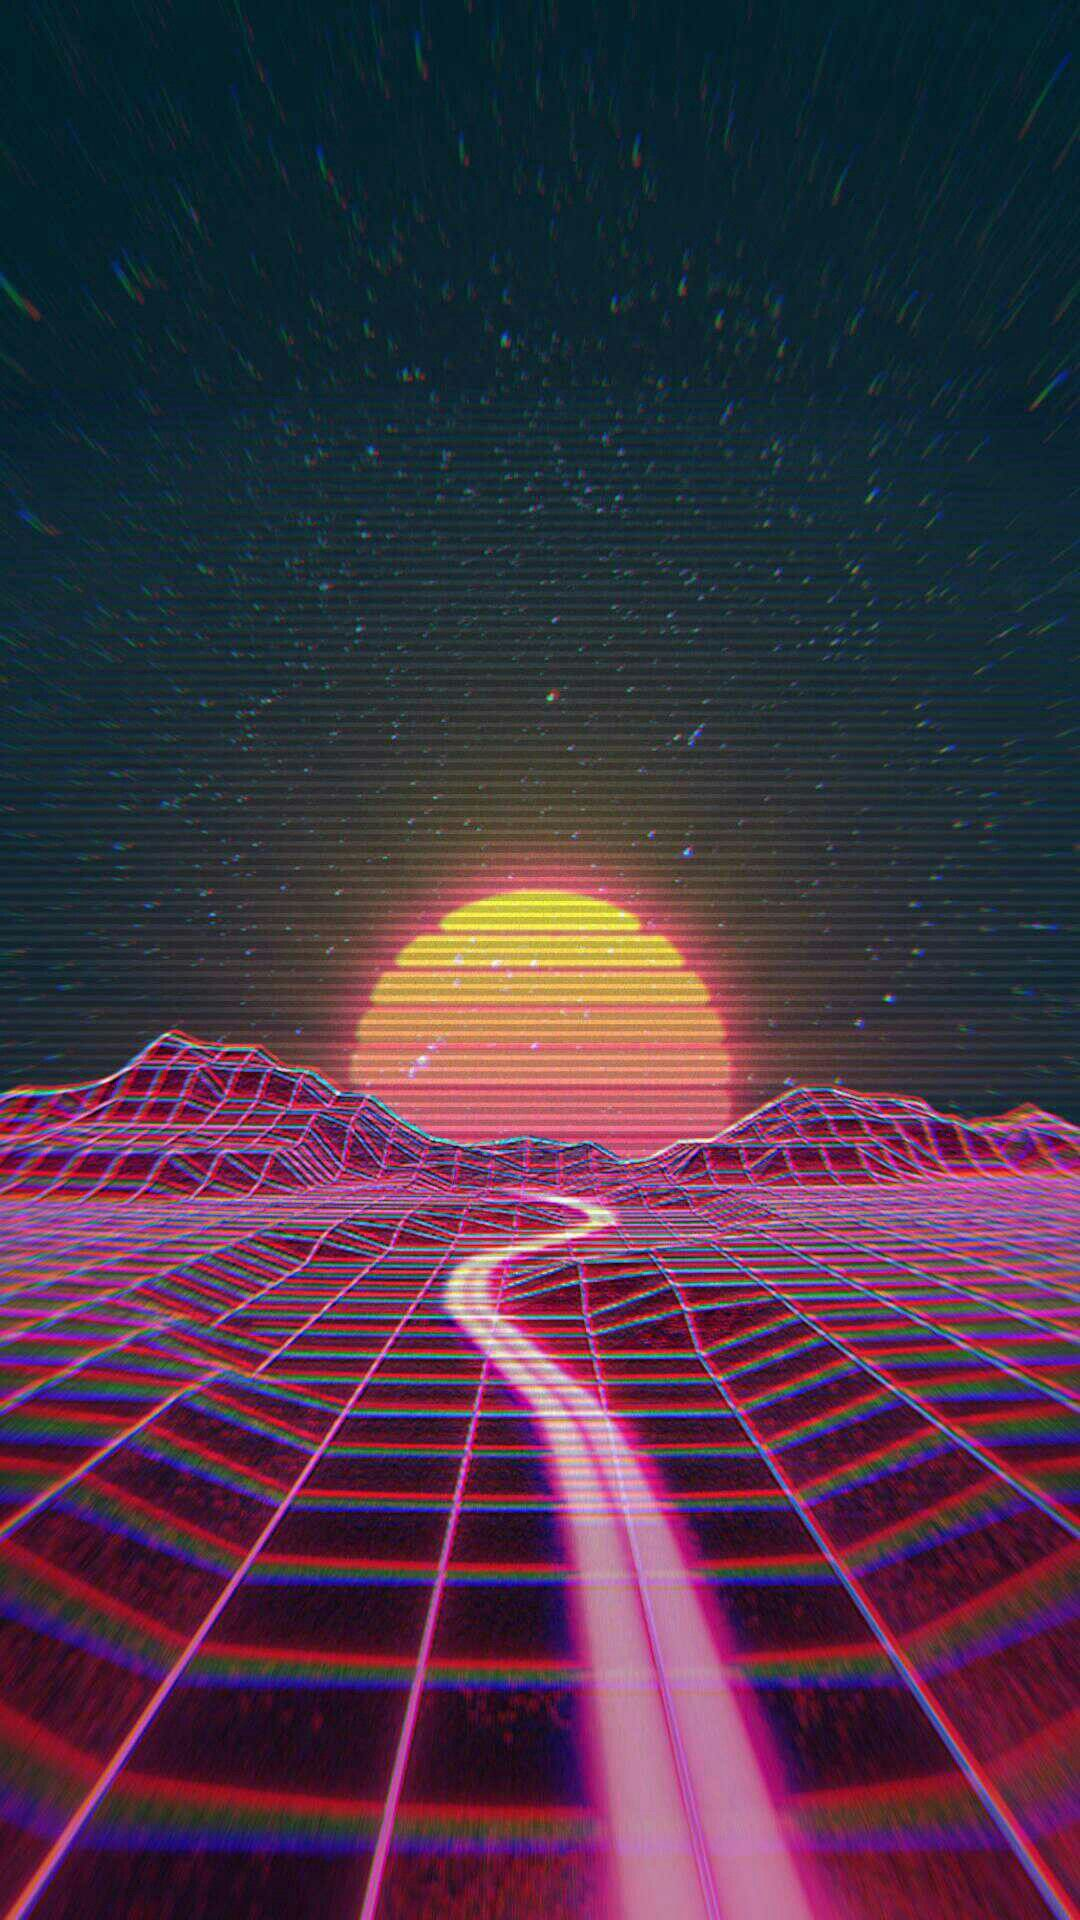 æighties æsthetic | My asthetic in 2019 | Aesthetic wallpapers, Vaporwave wallpaper, Wallpaper